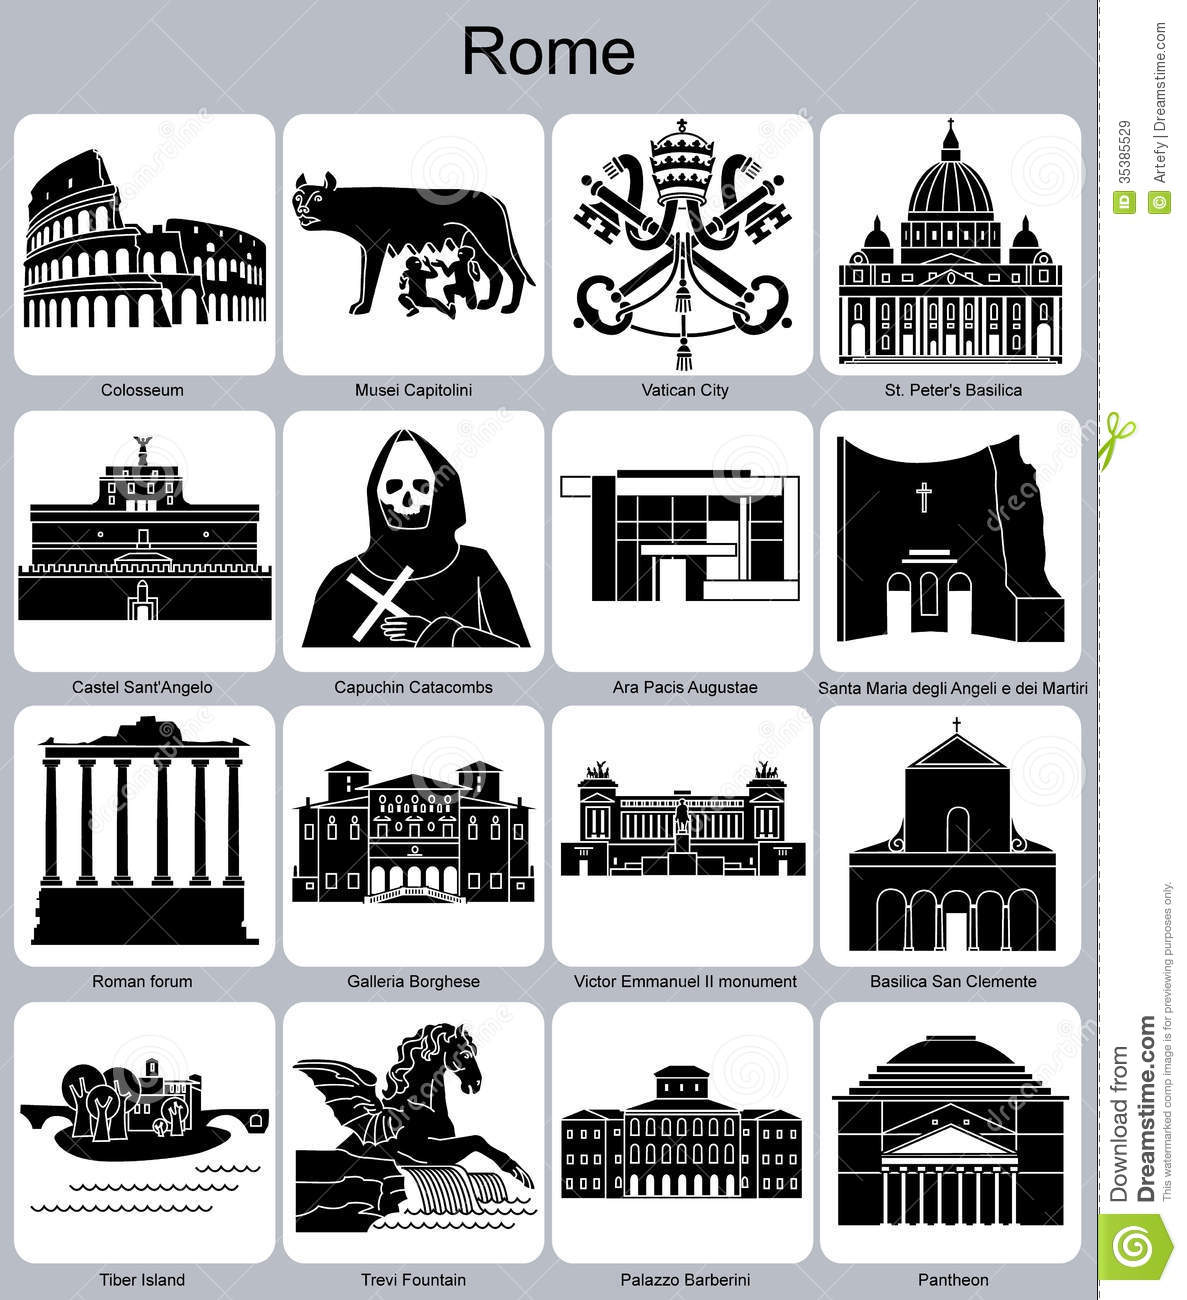 Anicent, building, creative, dome, grid, italy, pantheon, roman ...